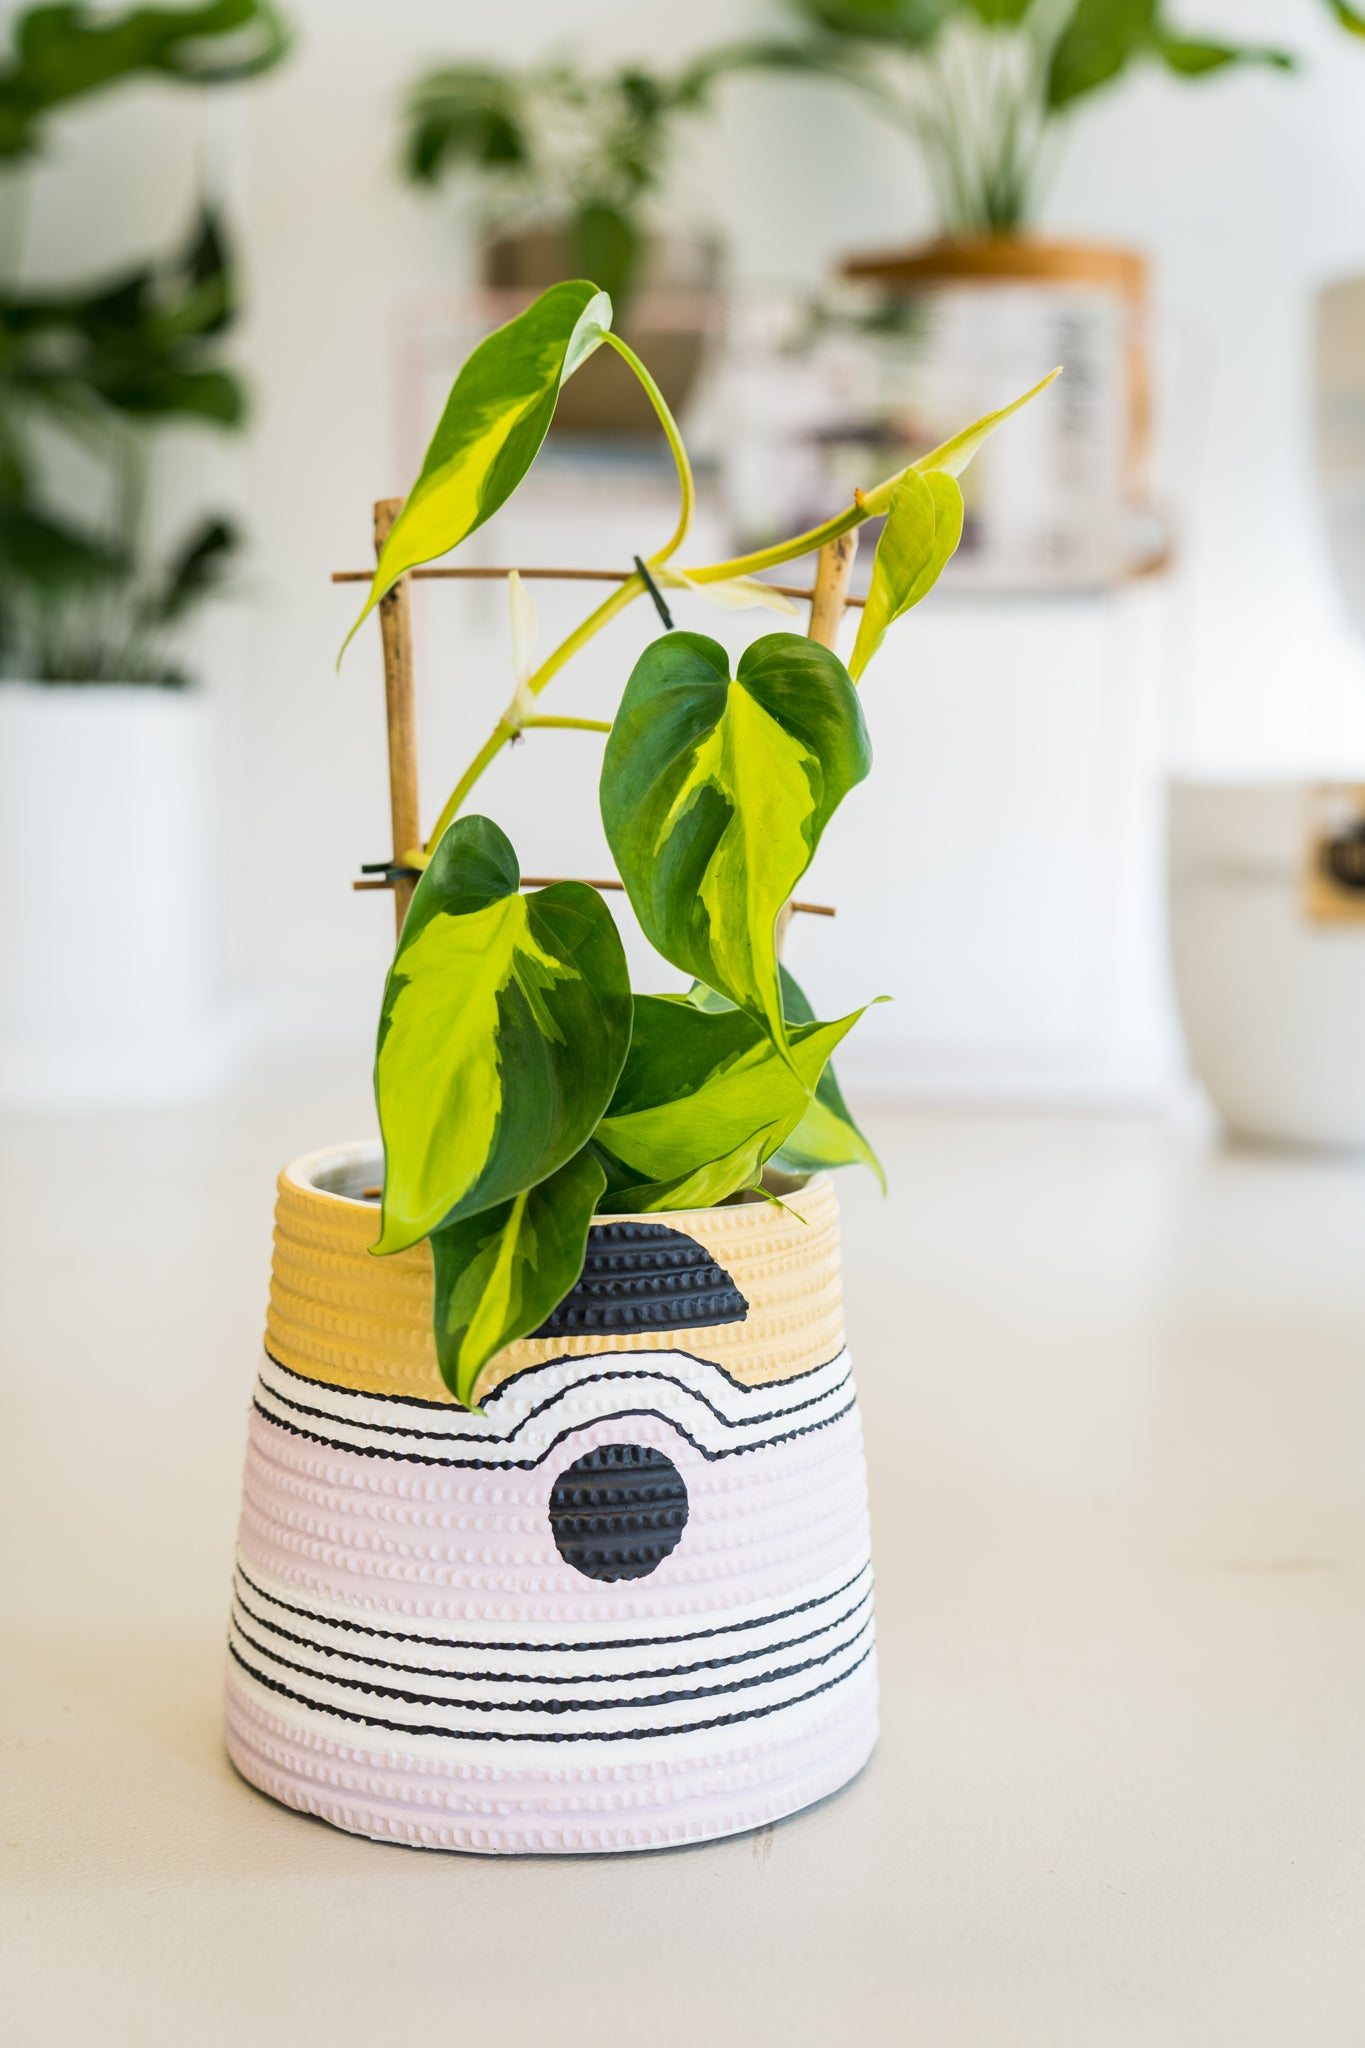 And now, a word from our stockists: Their top 3 houseplants for 2020